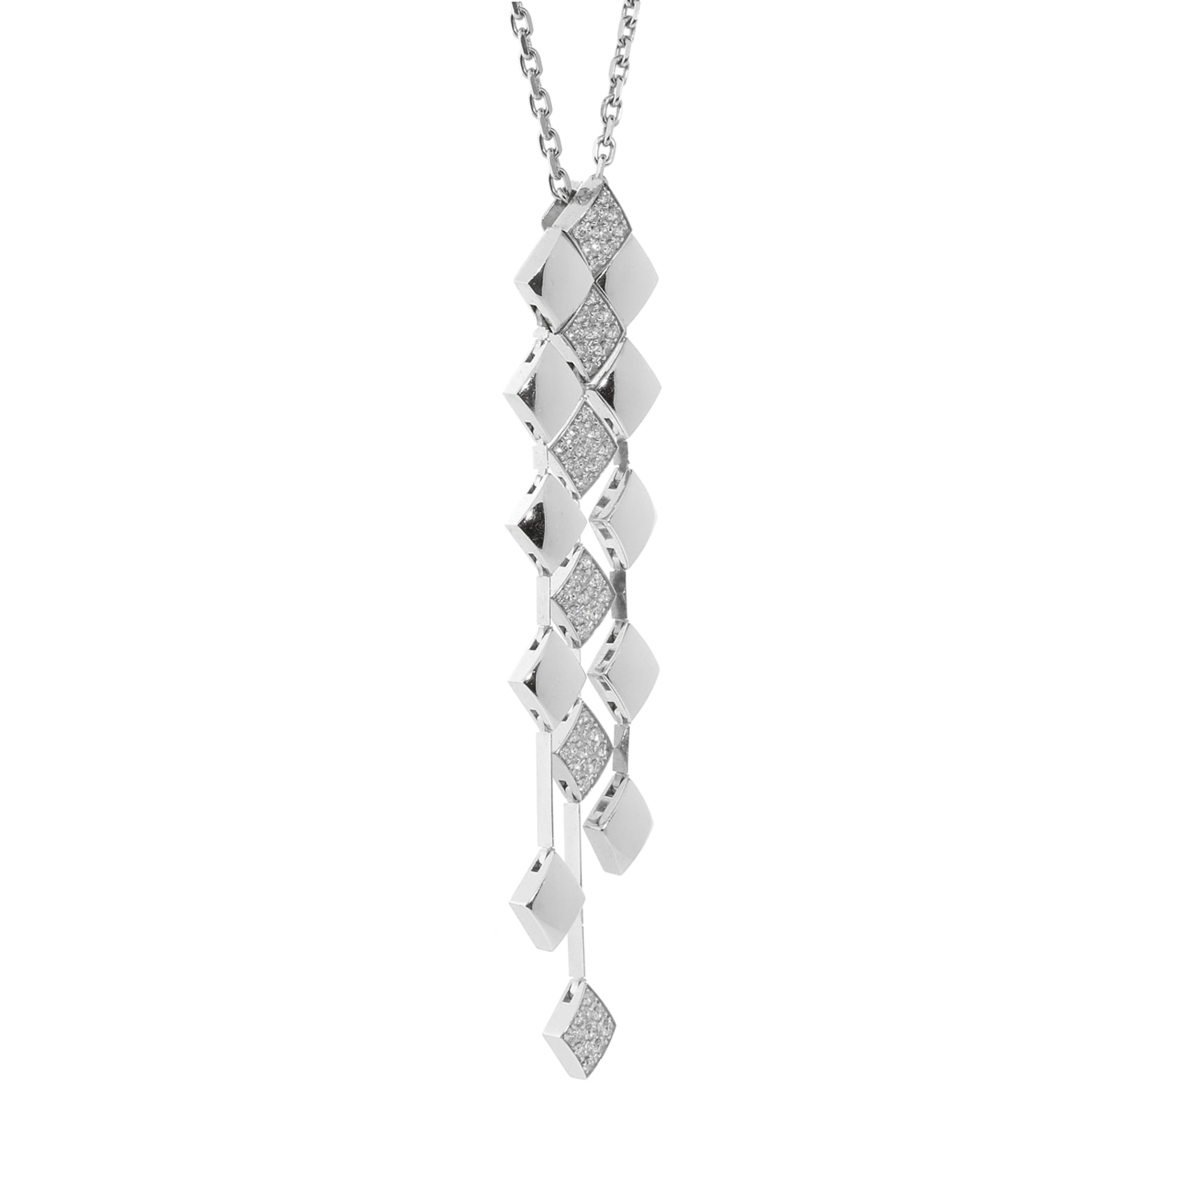 Chanel Matelasse Diamond White Gold Necklace - Chanel Jewelry